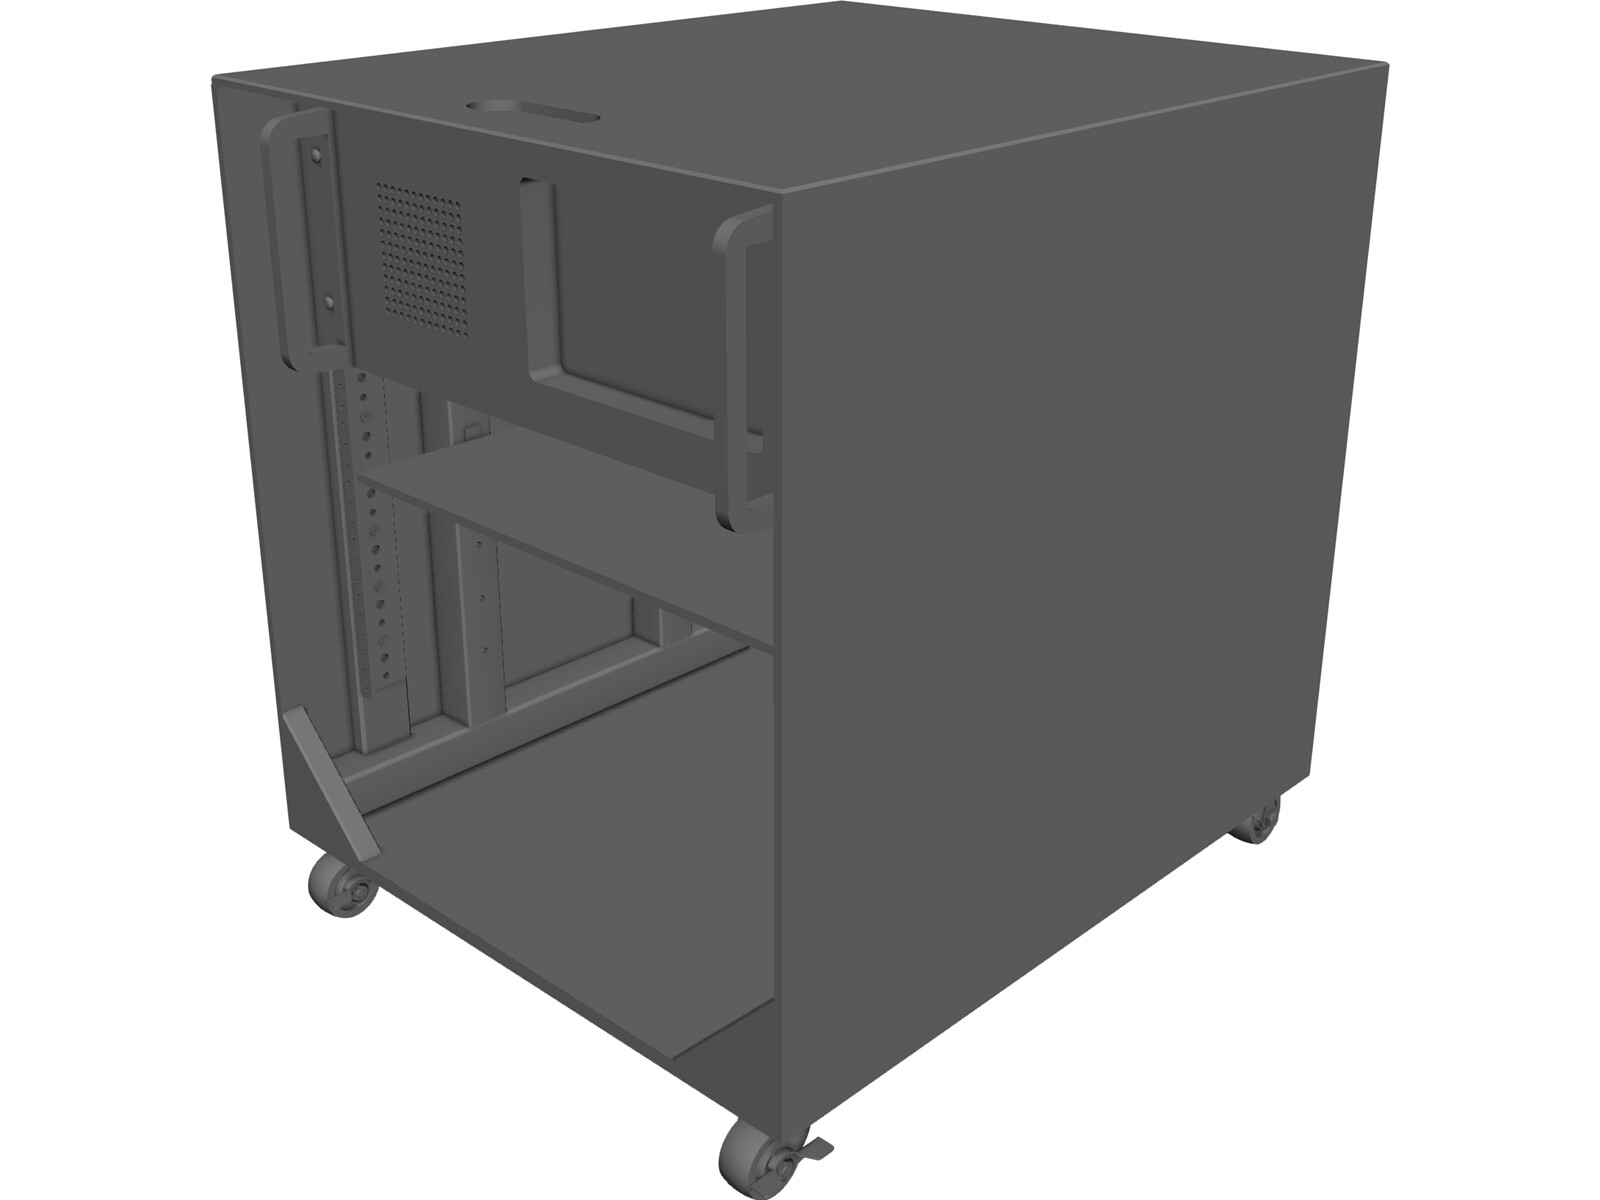 Audio/Server Rack with 4U Instrument 19-inch 3D Model